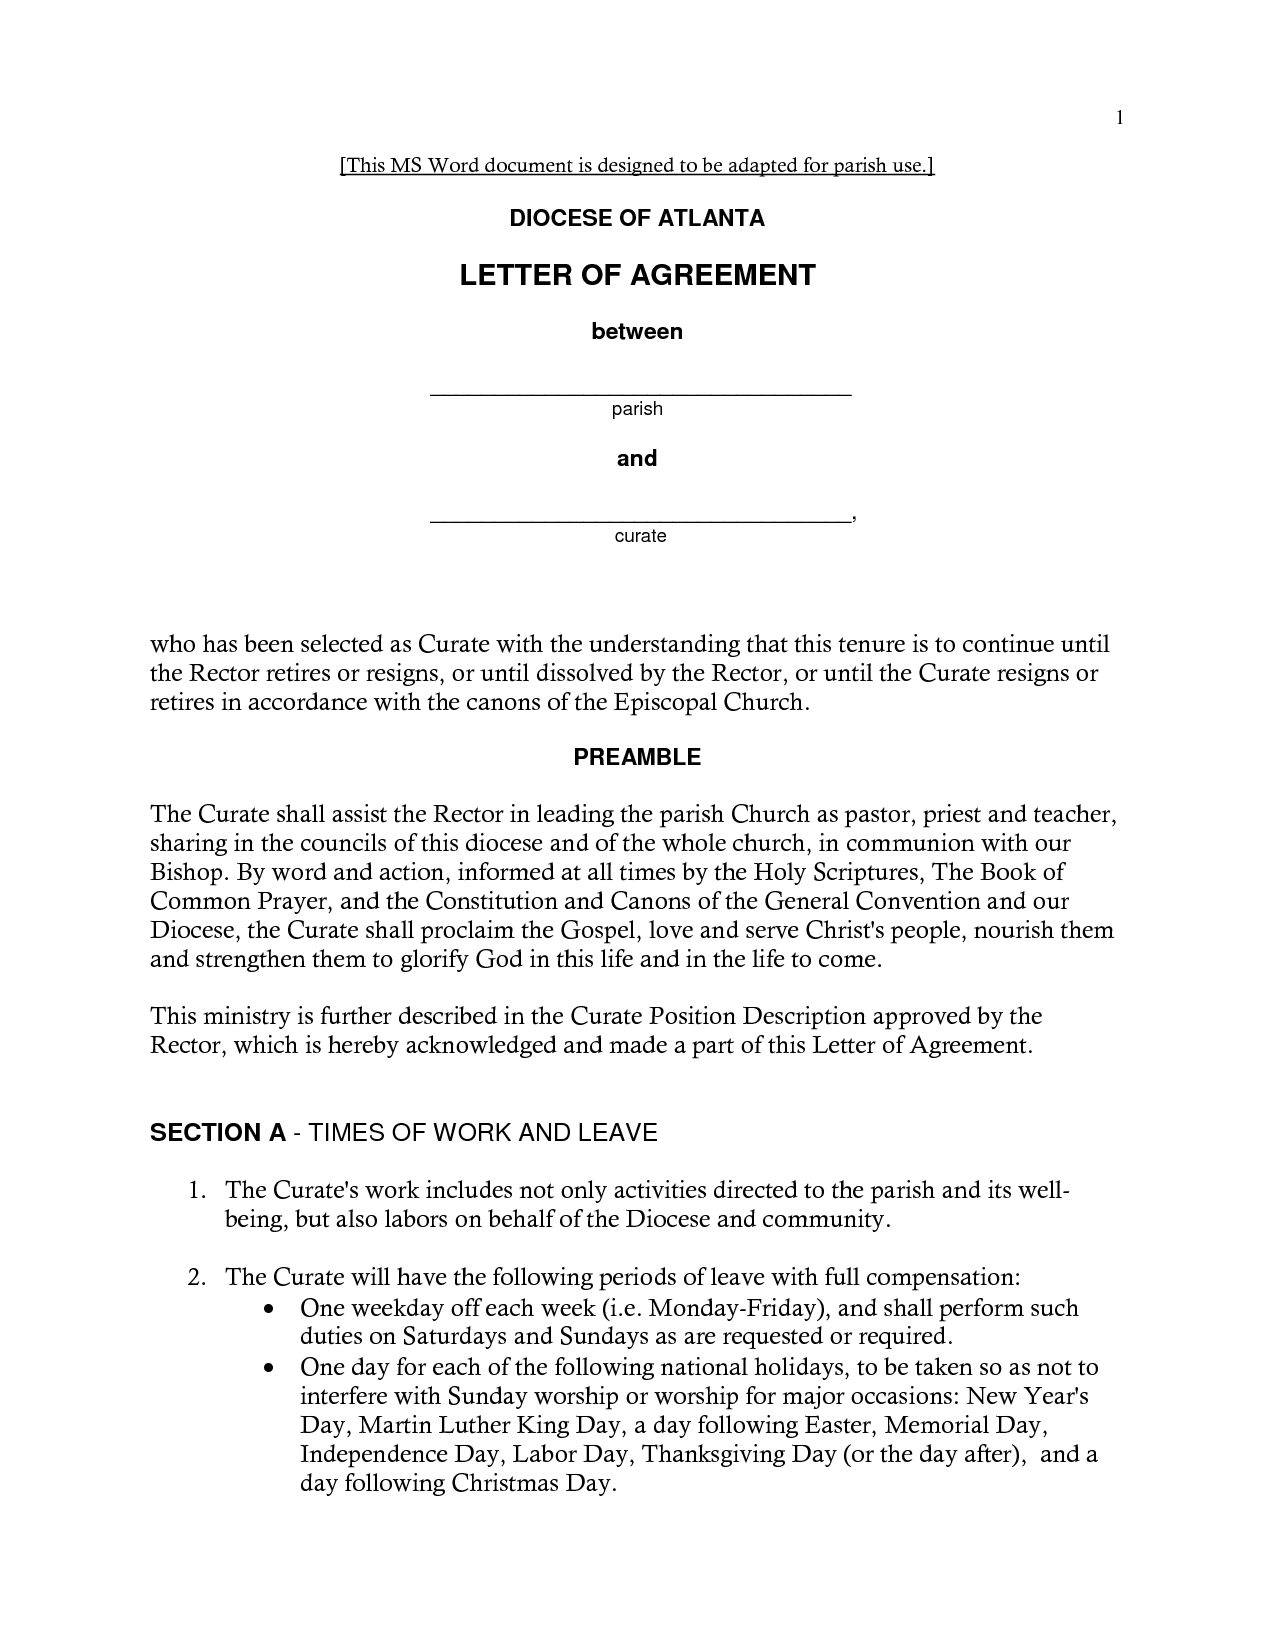 Free Printable Letter Of Agreement Form GENERIC